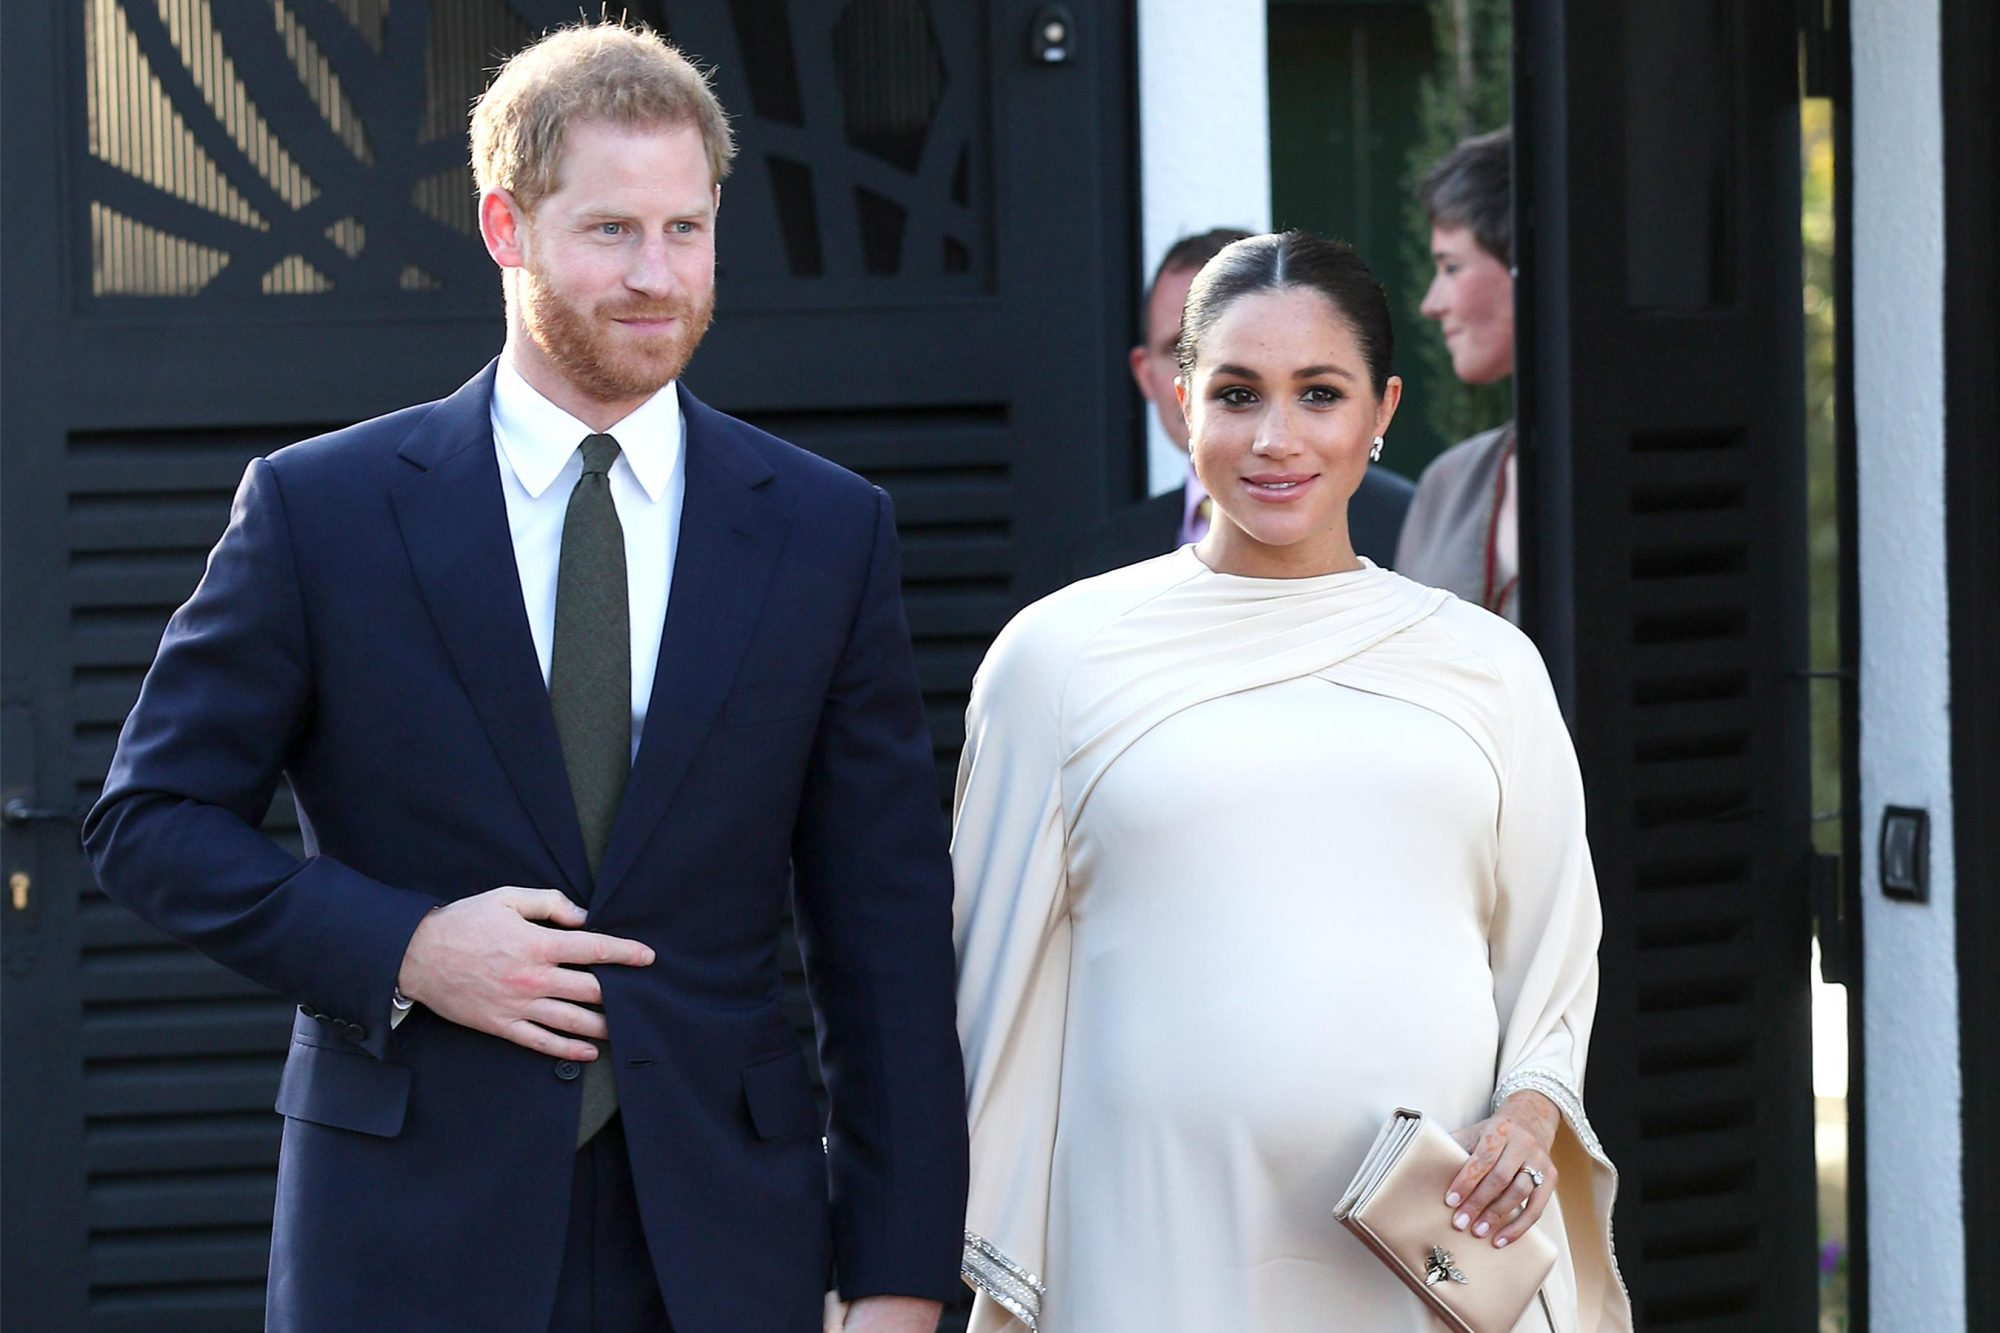 RABAT, MOROCCO - FEBRUARY 24: Prince Harry, Duke of Sussex and Meghan, Duchess of Sussex arrive for a reception hosted by the British Ambassador to Morocco at the British Residence during the second day of their tour of Morocco on February 24, 2019 in Rabat, Morocco. (Photo by Yui Mok - Pool/Getty Images)